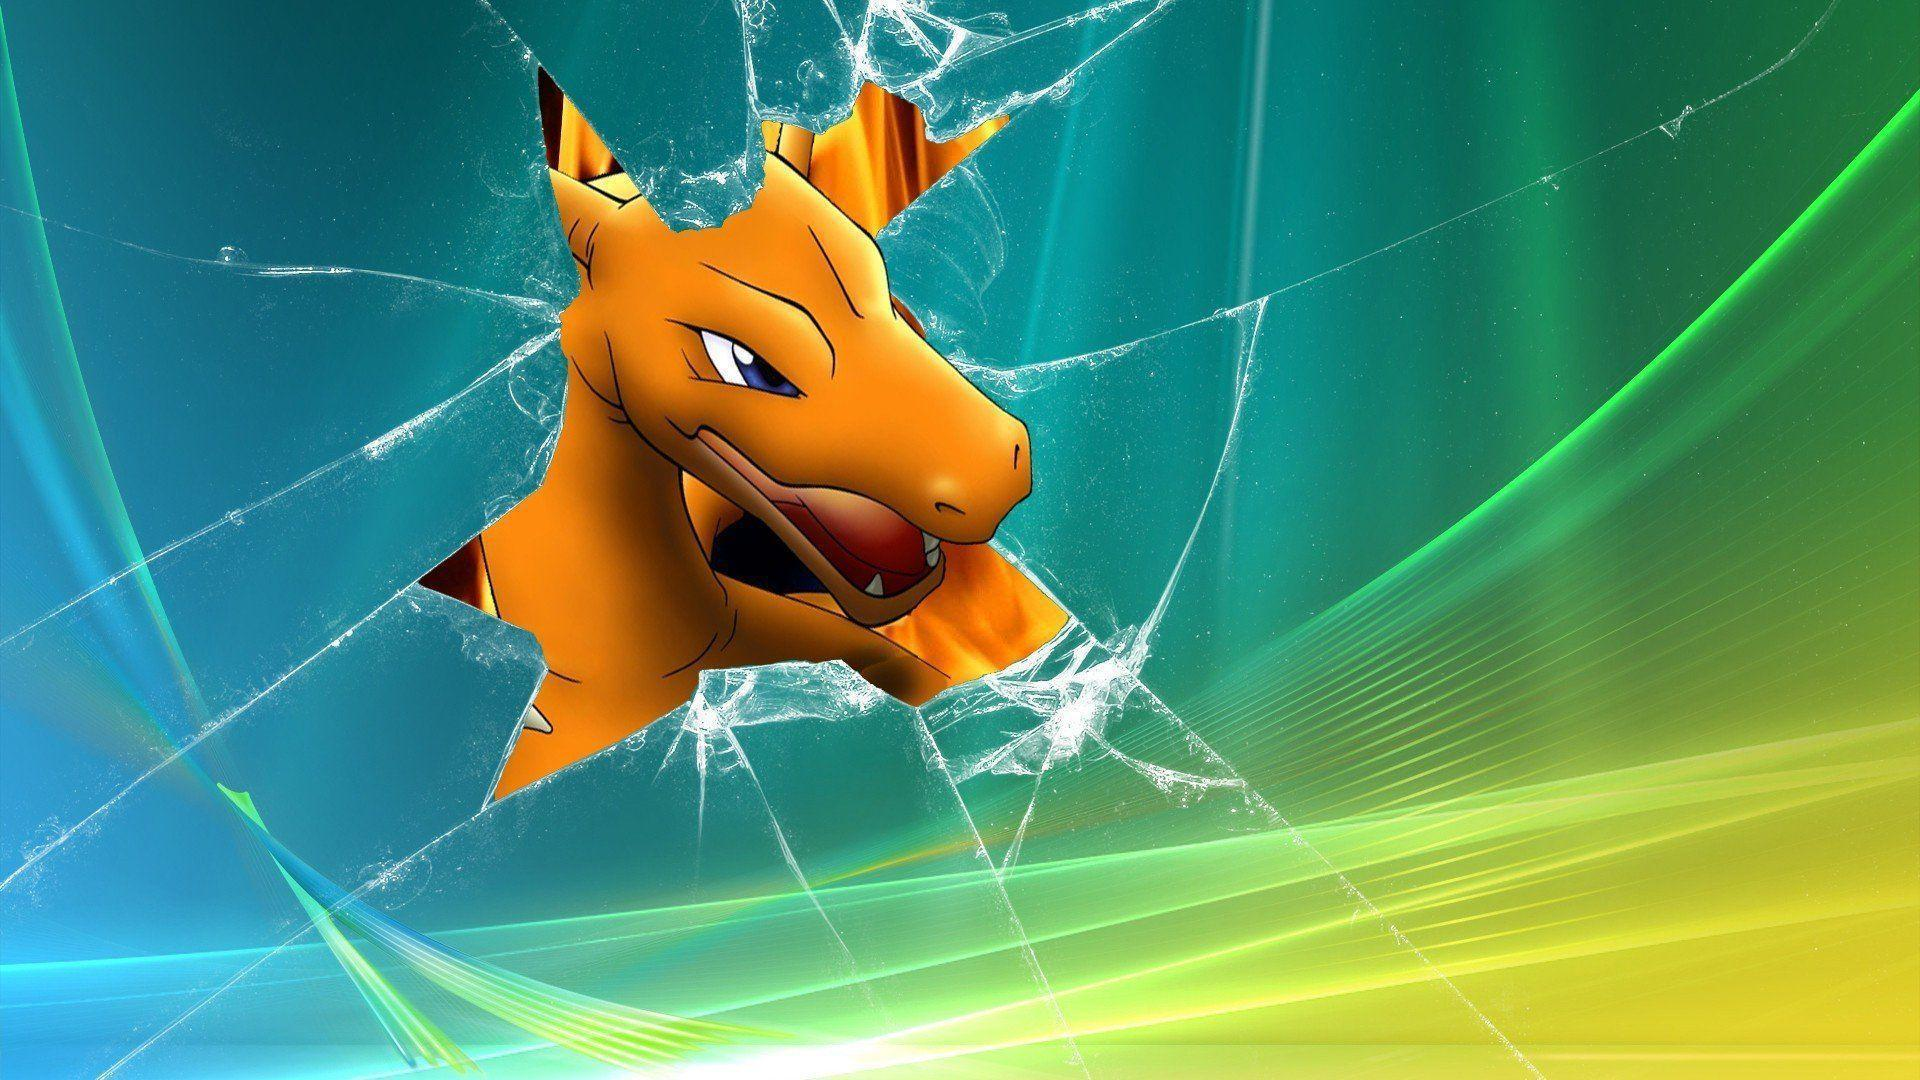 Charizard Pokémon Wallpapers - Wallpaper Cave